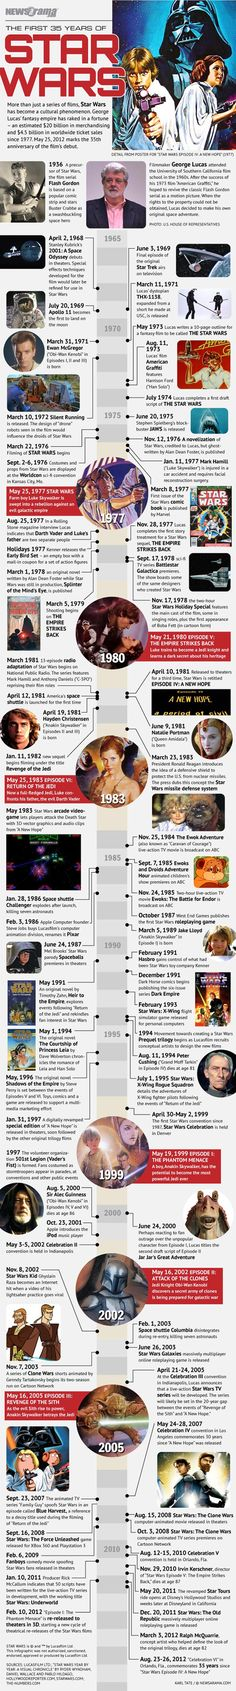 Happy 35th Anniversary Star Wars! Fun article and infographics to help you reminisce (note: second infographic has errors in the character/actor appearance by episode section. If it bothered me, it will likely bother you too... just be aware)